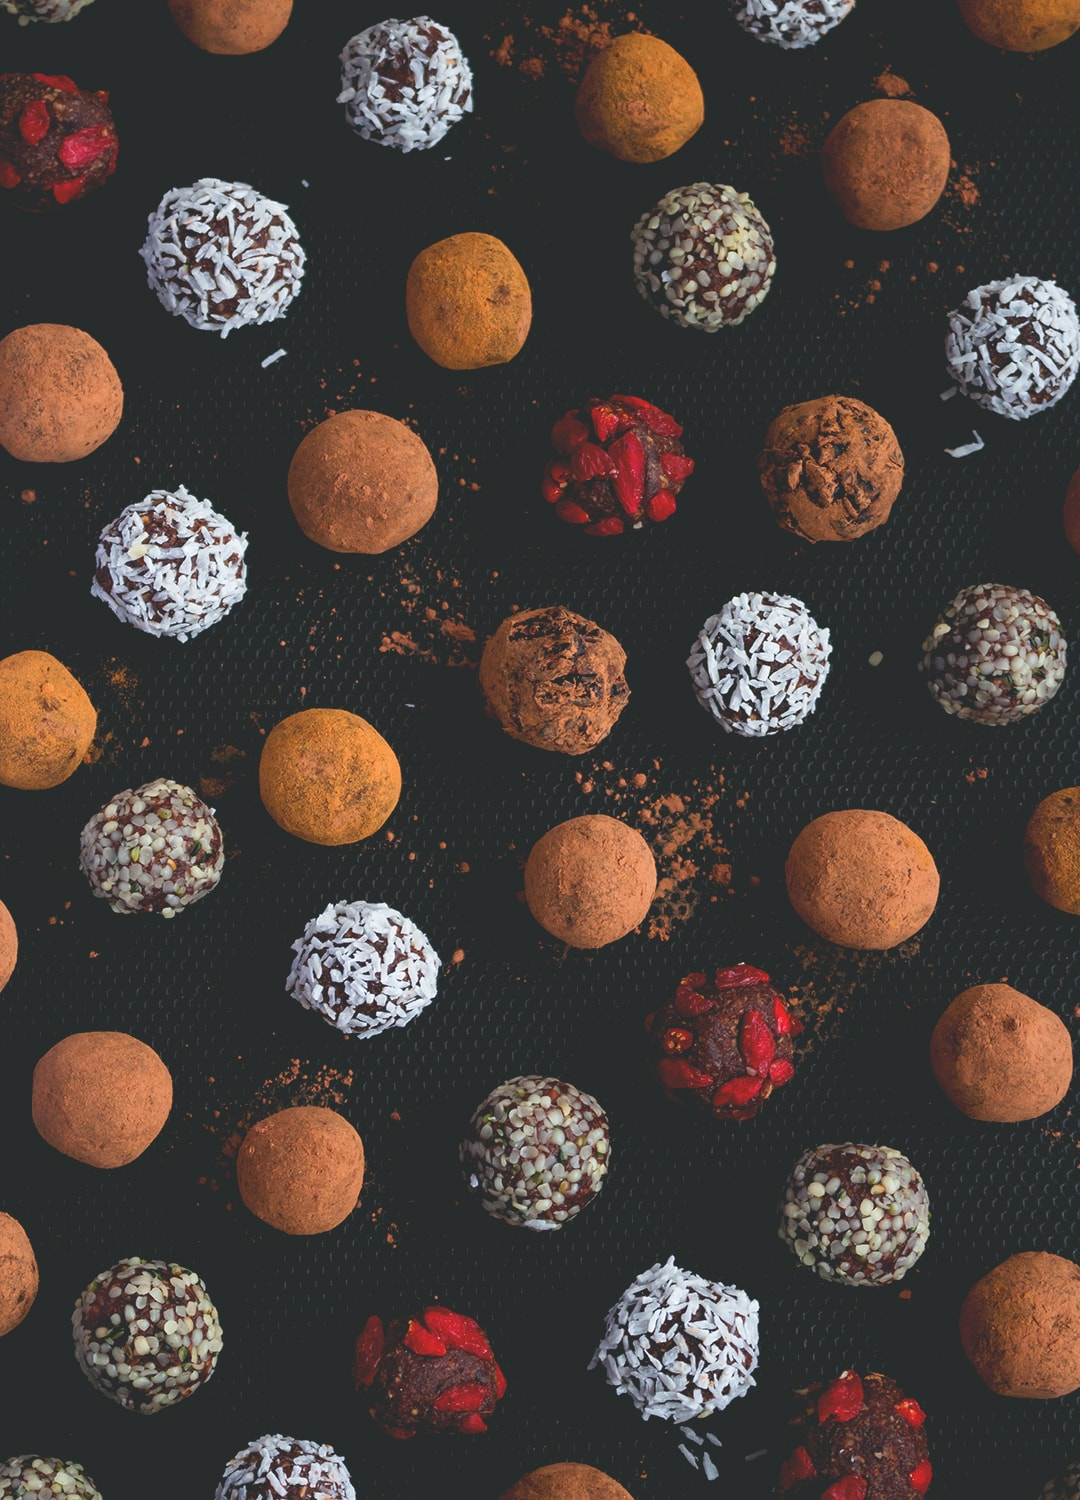 12 Christmas Recipes You Need to Make This Year: Chocolate Hazelnut Bites - sweet and chocolatey bliss balls, delicious any time of the year. A perfect snack for busy days. Vegan and absolutely heavenly! | thehealthfulideas.com